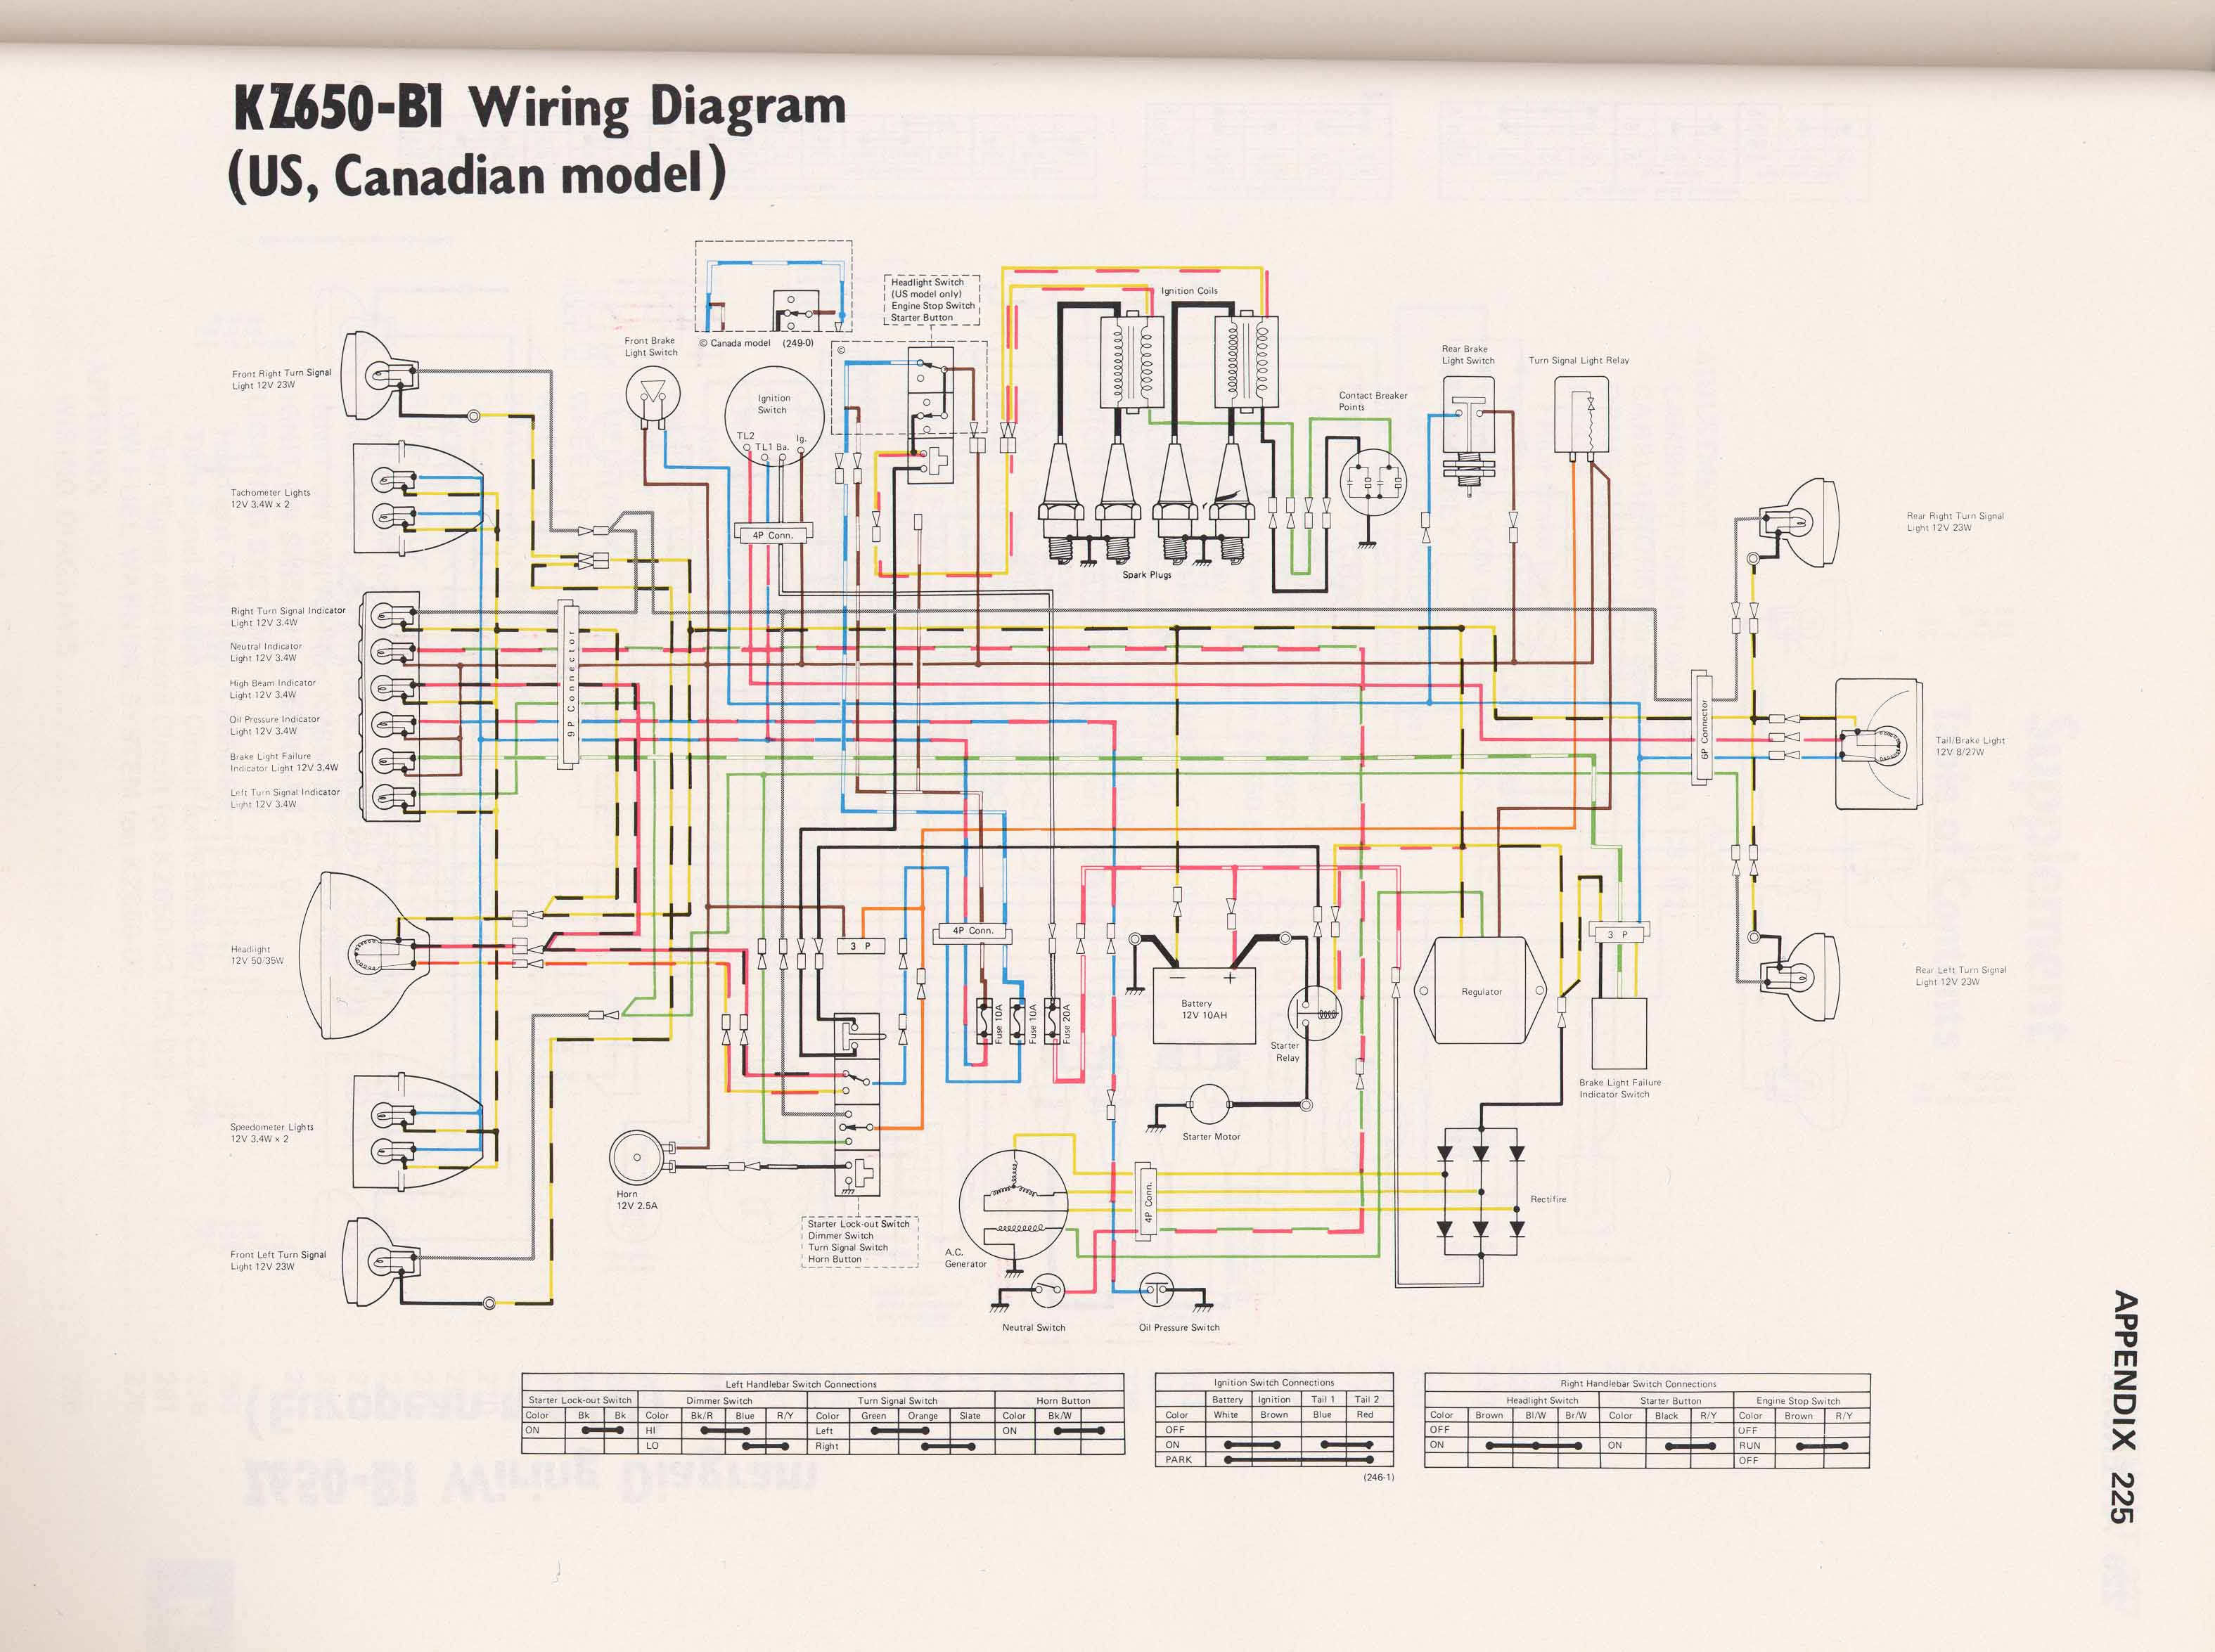 KZ650.INFO - Wiring Diagrams on nissan electrical wiring diagram, mack truck electrical wiring diagram, volvo penta electrical wiring diagram, power wheels electrical wiring diagram, toyota electrical wiring diagram, bass tracker electrical wiring diagram, kubota electrical wiring diagram, trailer electrical wiring diagram,